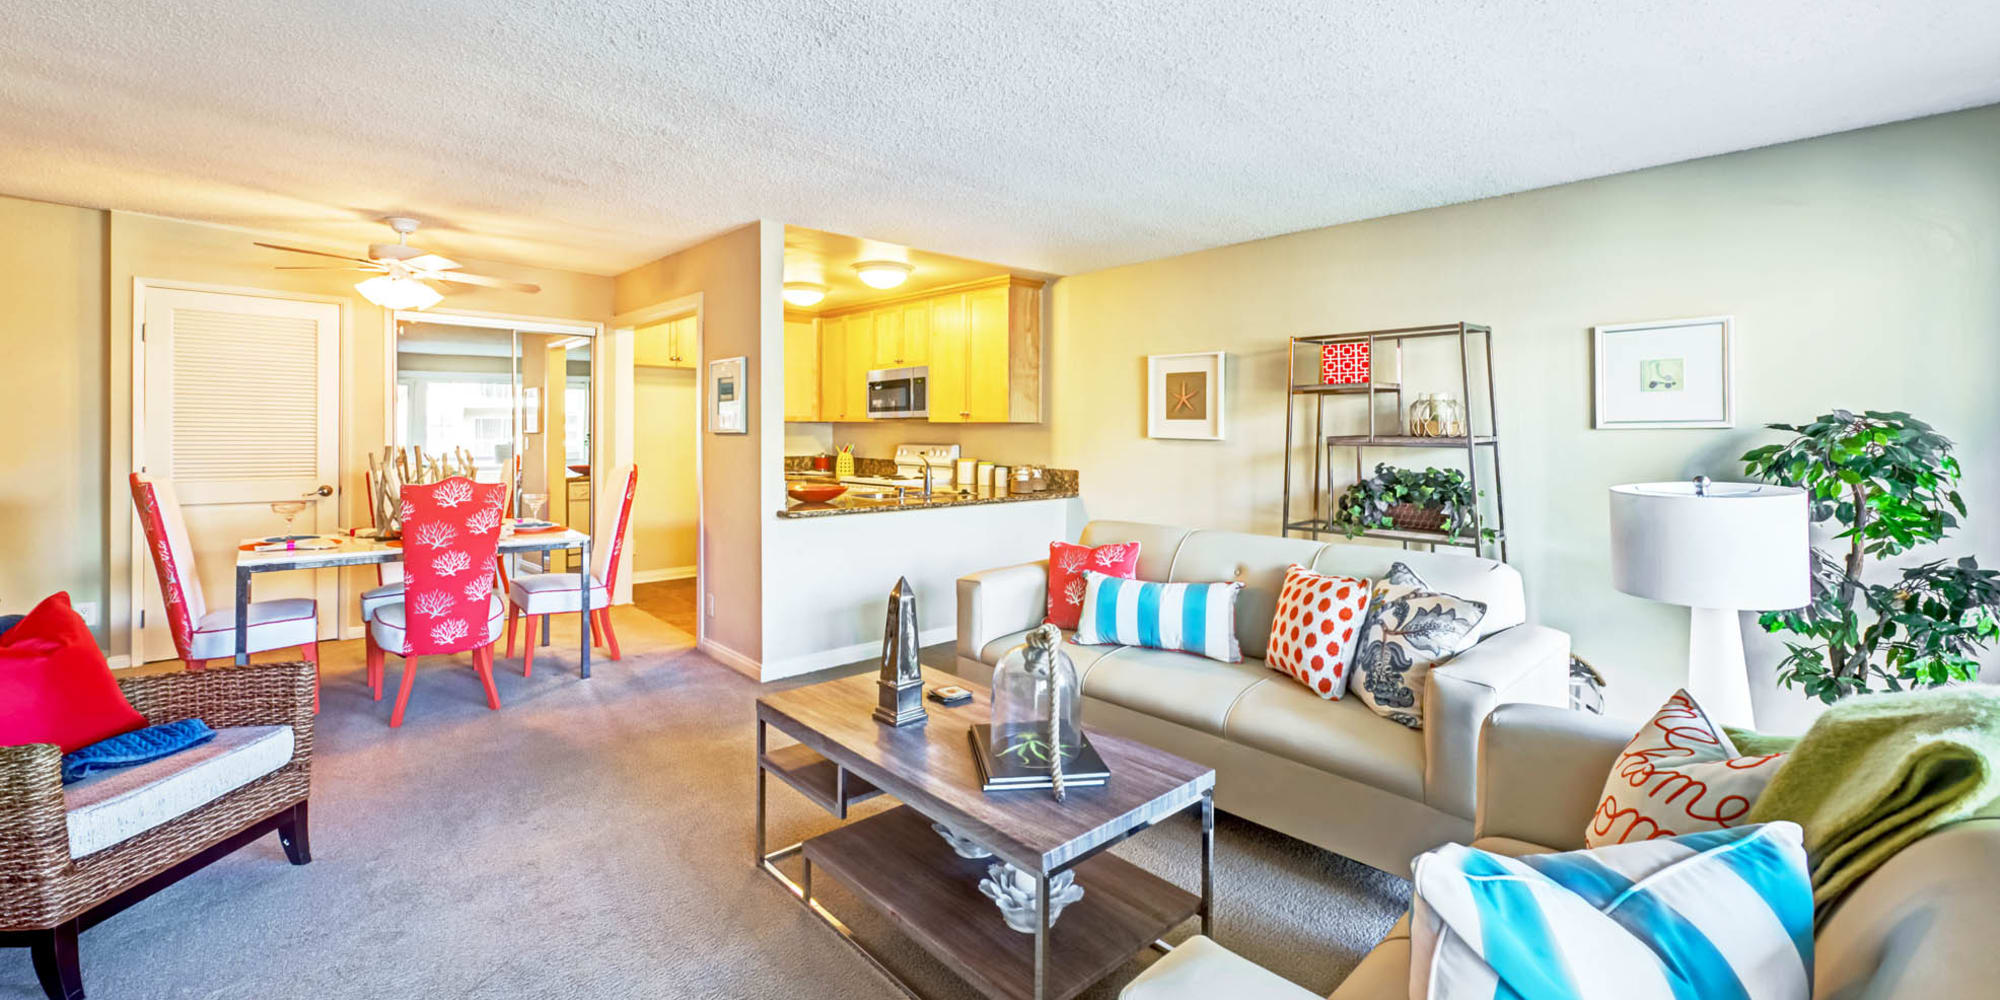 Well-furnished model home's living space at The Tides at Marina Harbor in Marina Del Rey, California